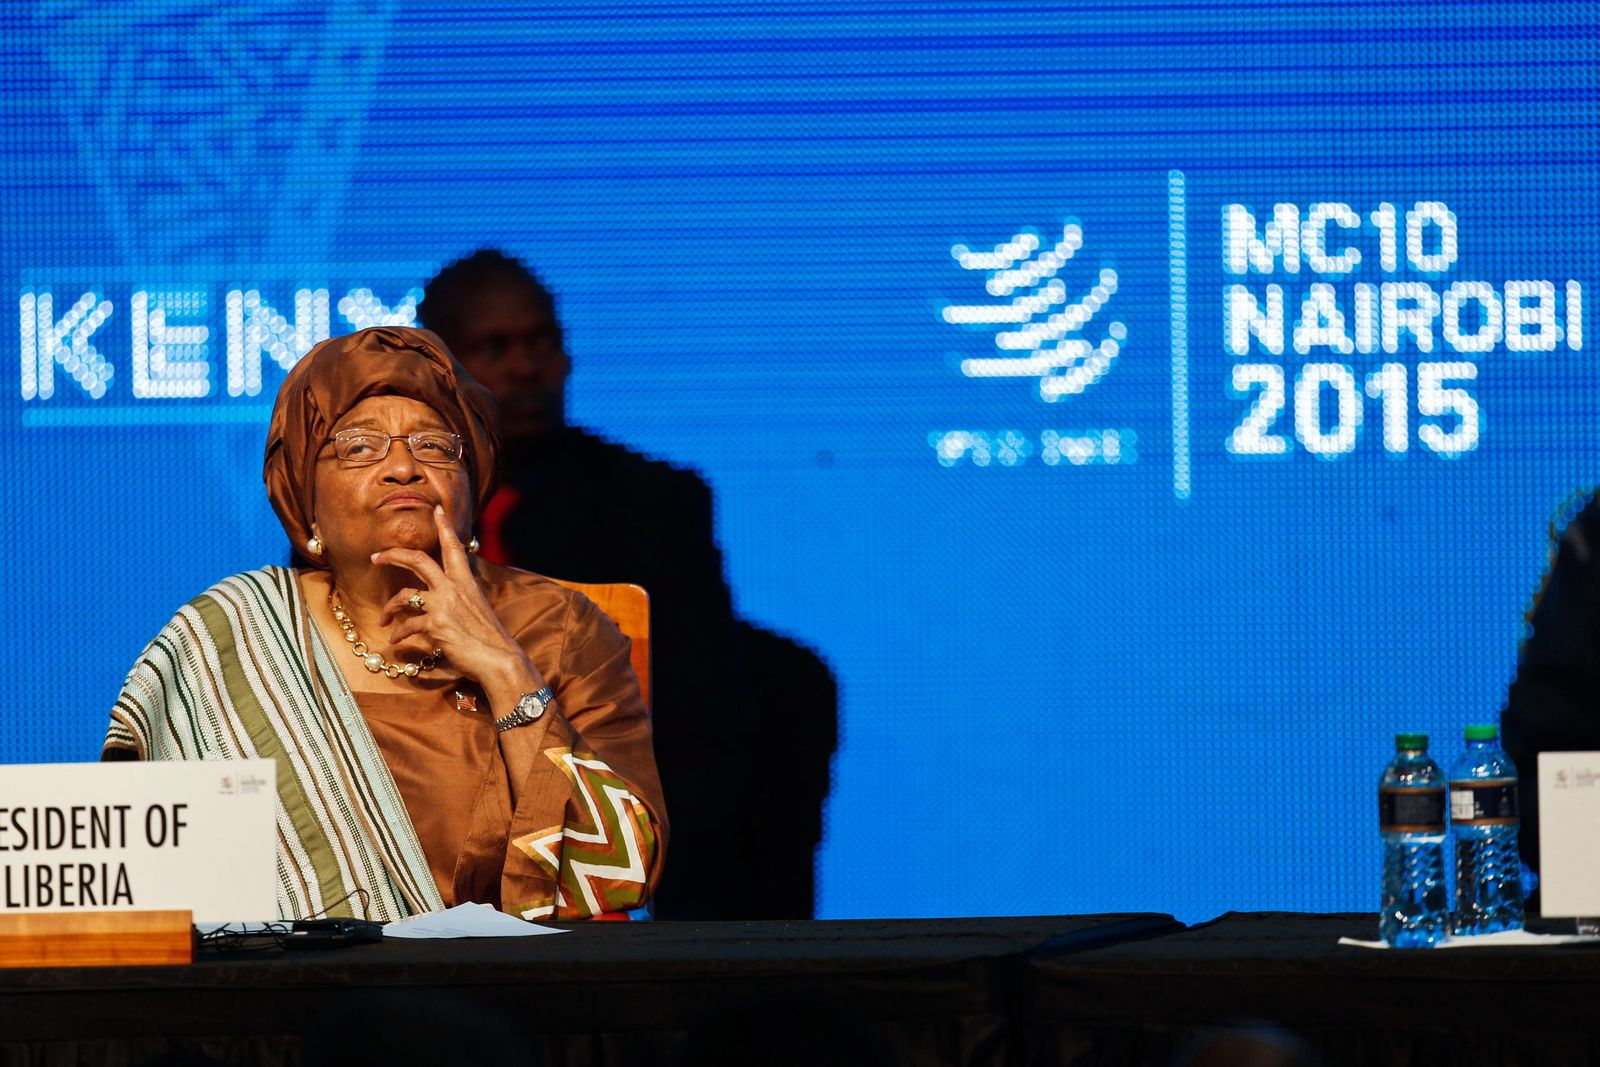 Tenth World Trade Organization Ministerial Conference in Nairobi